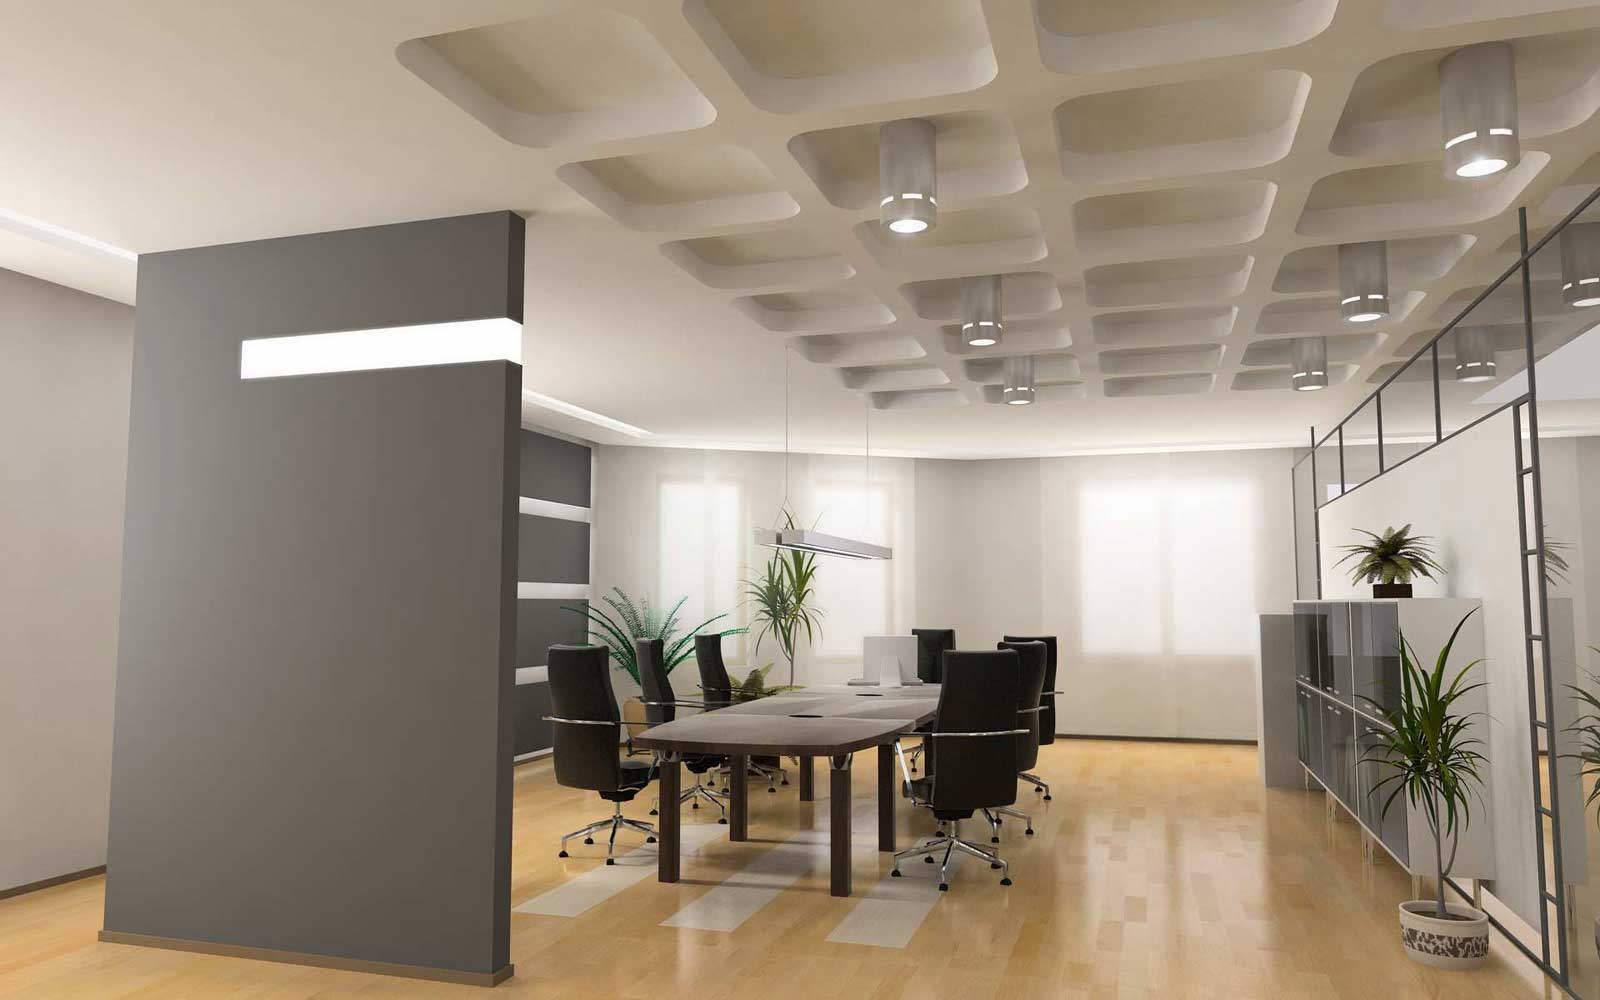 Small office decorating ideas office furniture for Corporate office decorating ideas